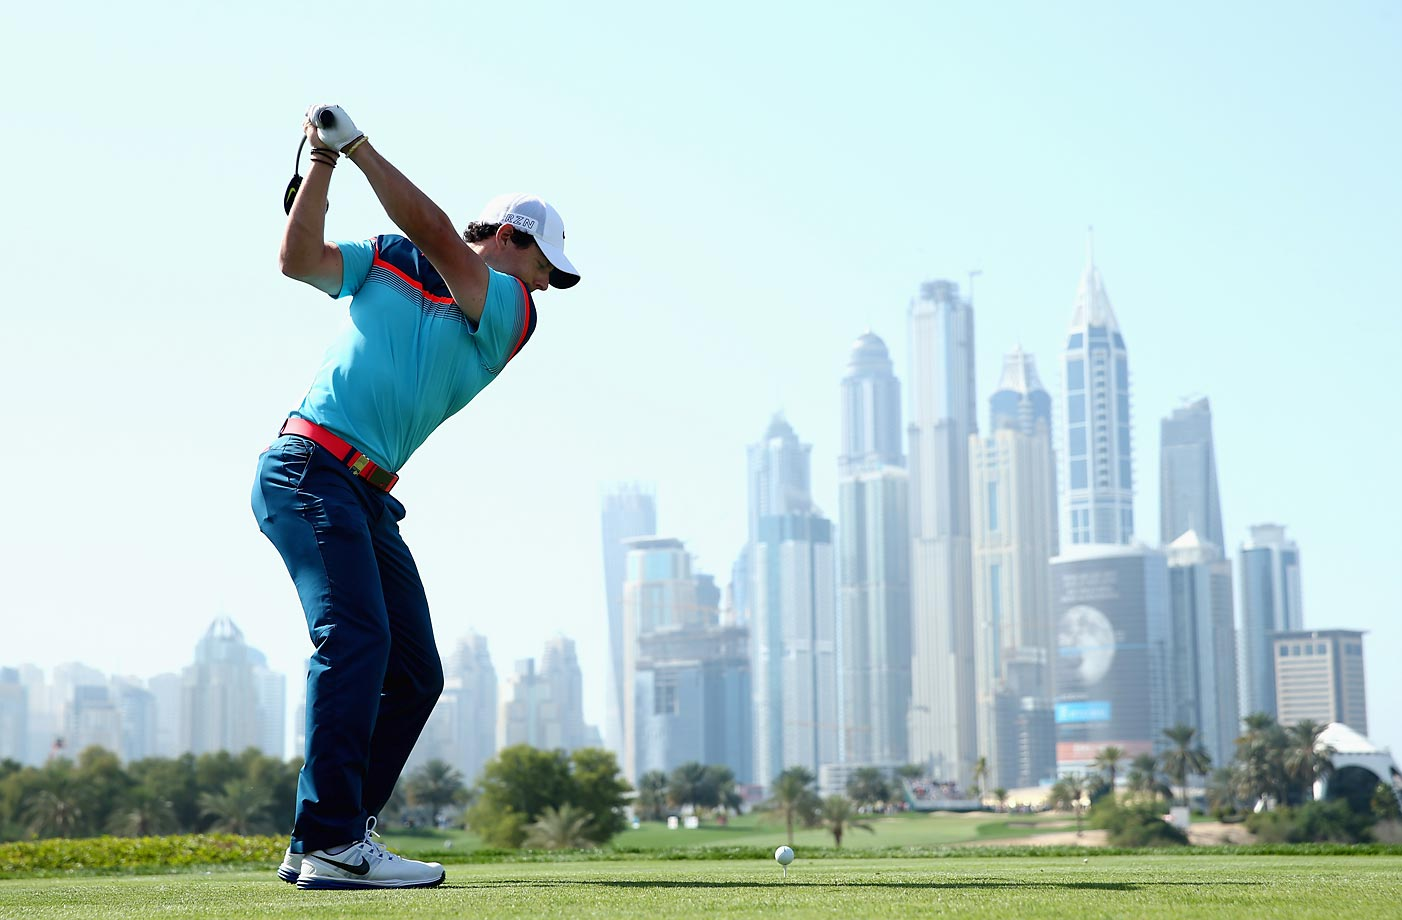 Rory McIlroy teeing off on the eighth hole during the final round of the Omega Dubai Desert Classic on the Majlis Course at the Emirates Golf Club.